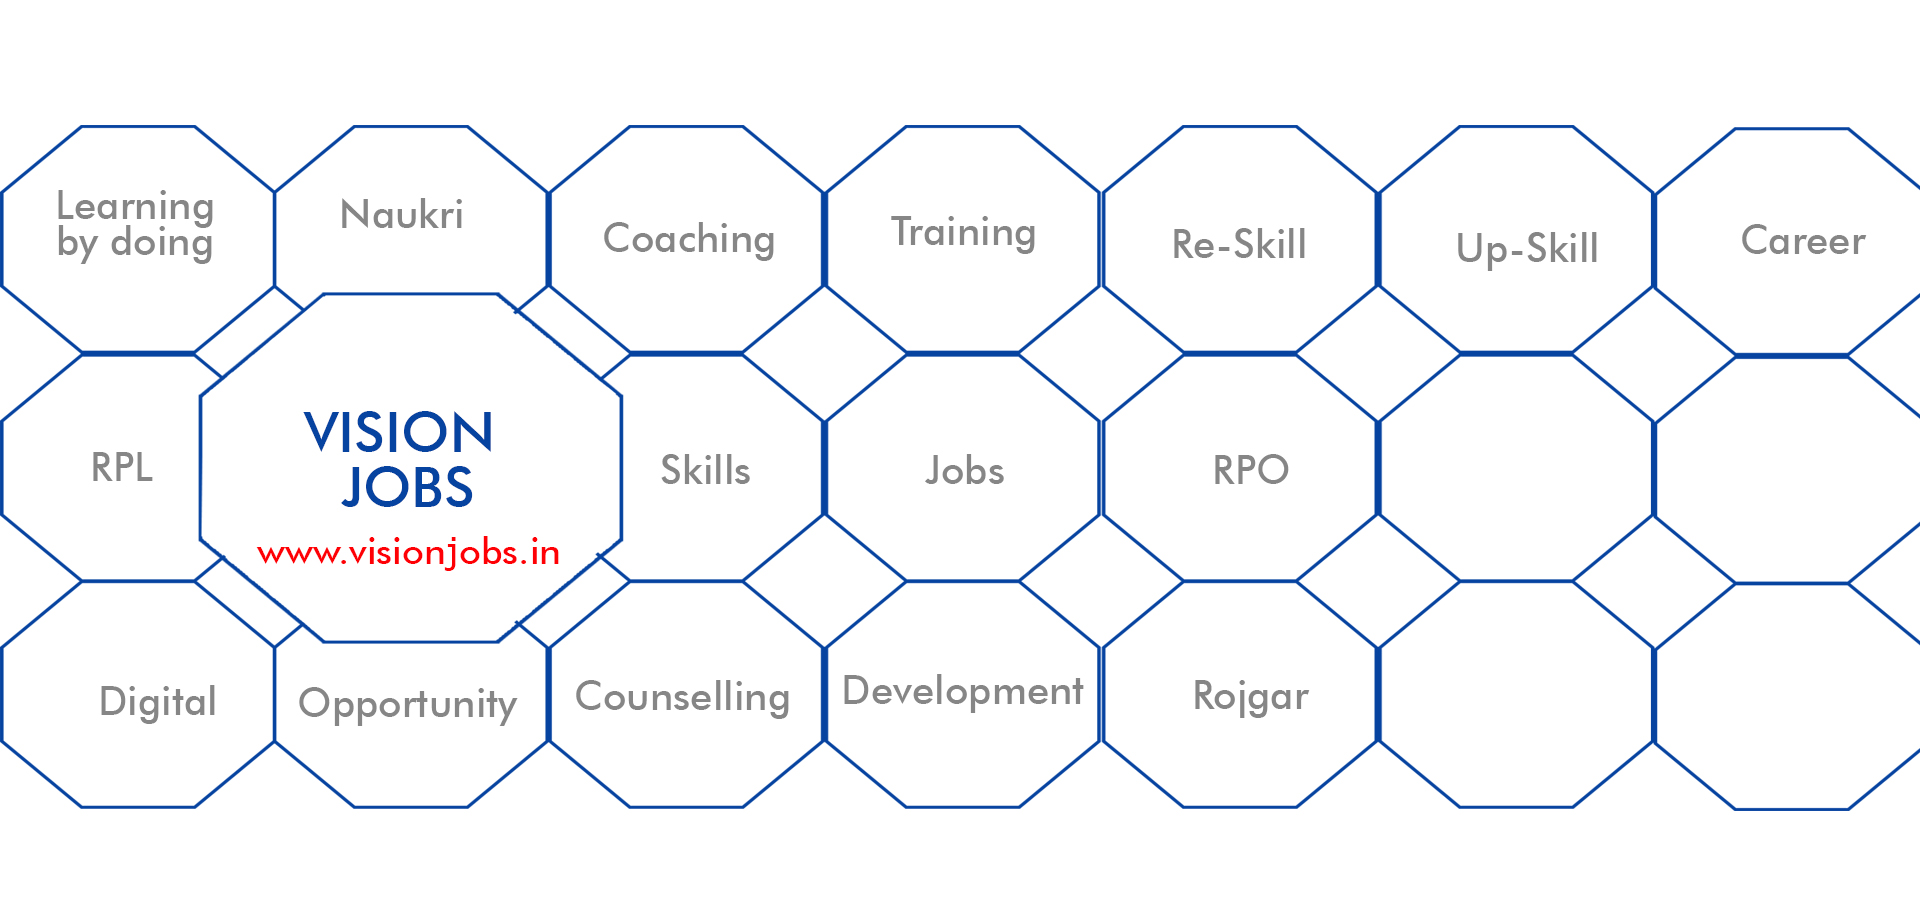 Vision India: 3 business verticals - Staffing, Skilling and